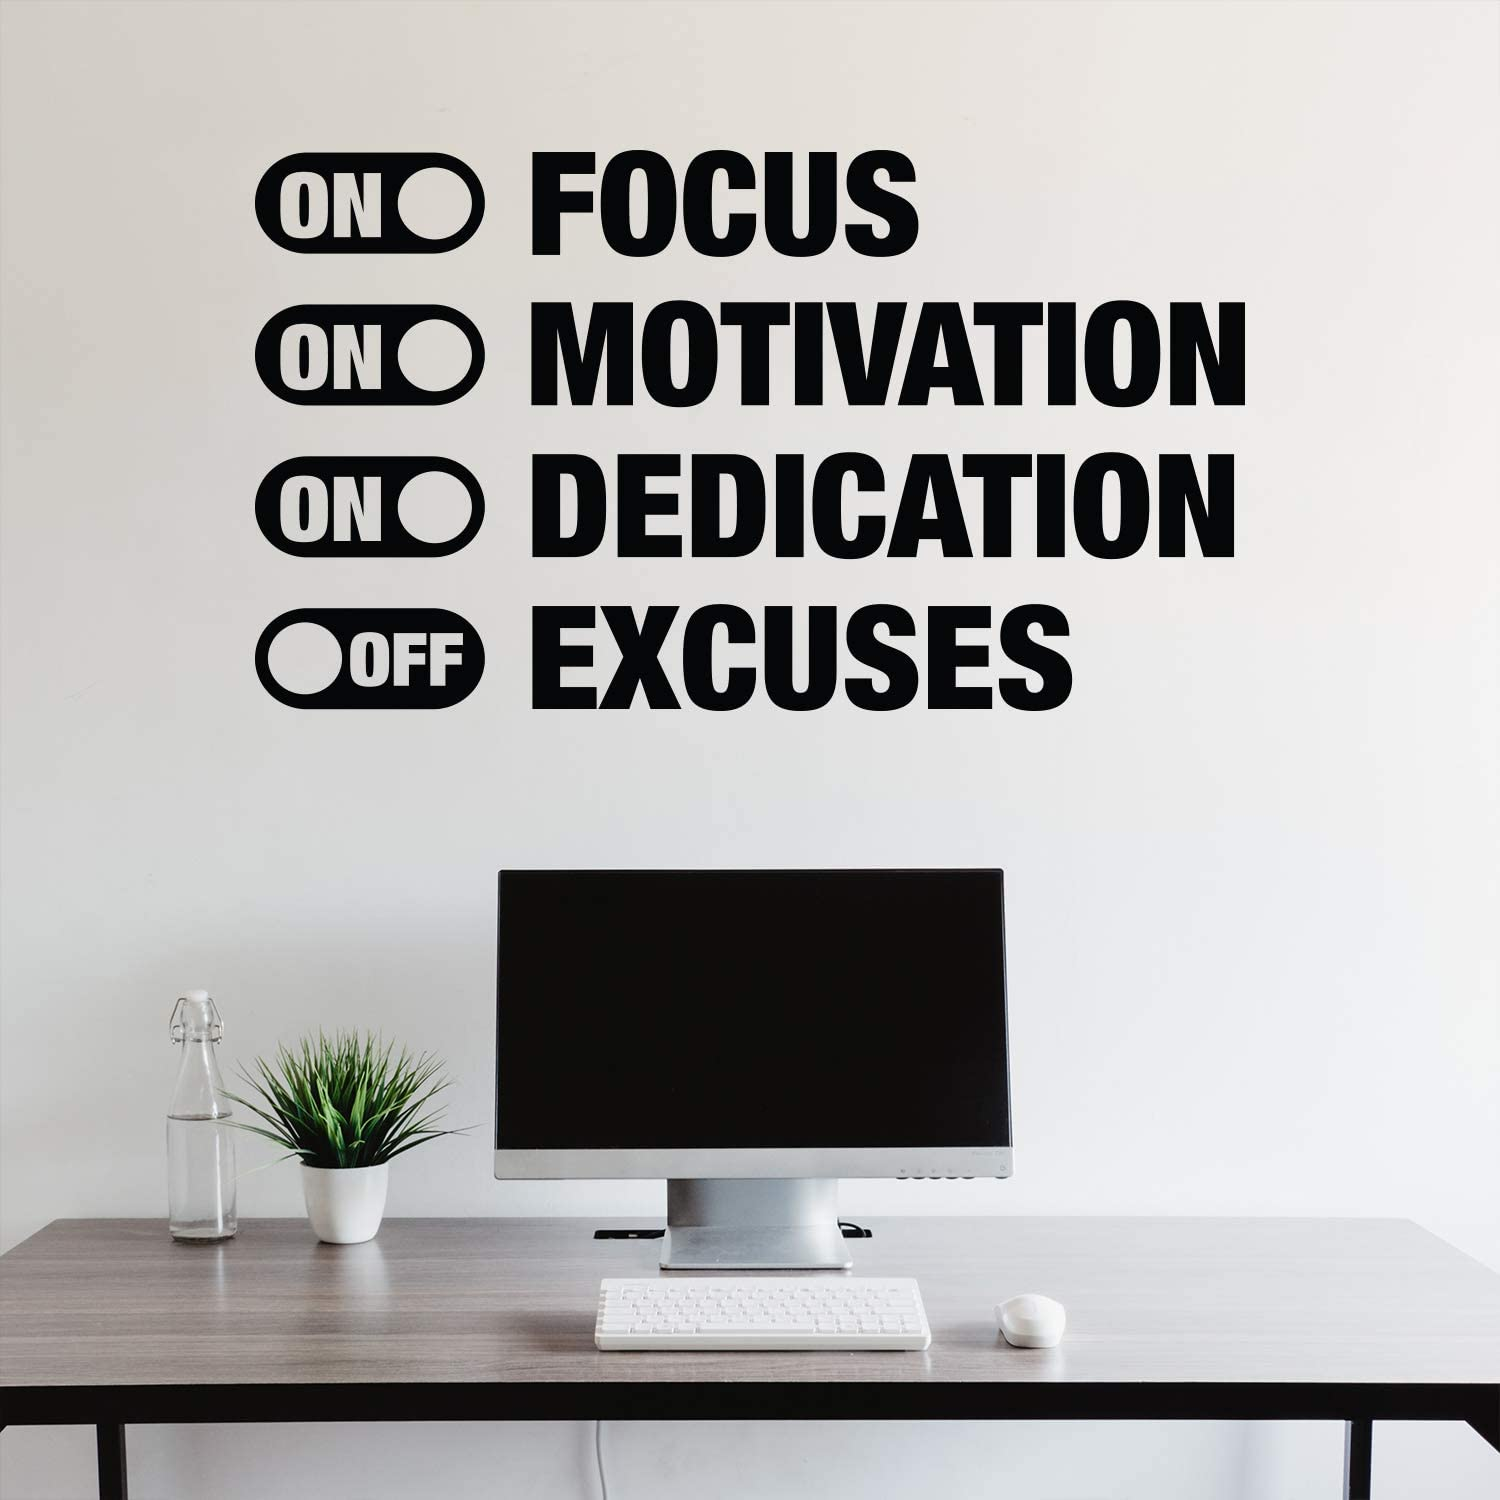 Vinyl Lettering Sticker Motivation Quote Fitness Saying Fitness Gym Training Vinyl Decal NO EXCUSES wall decal